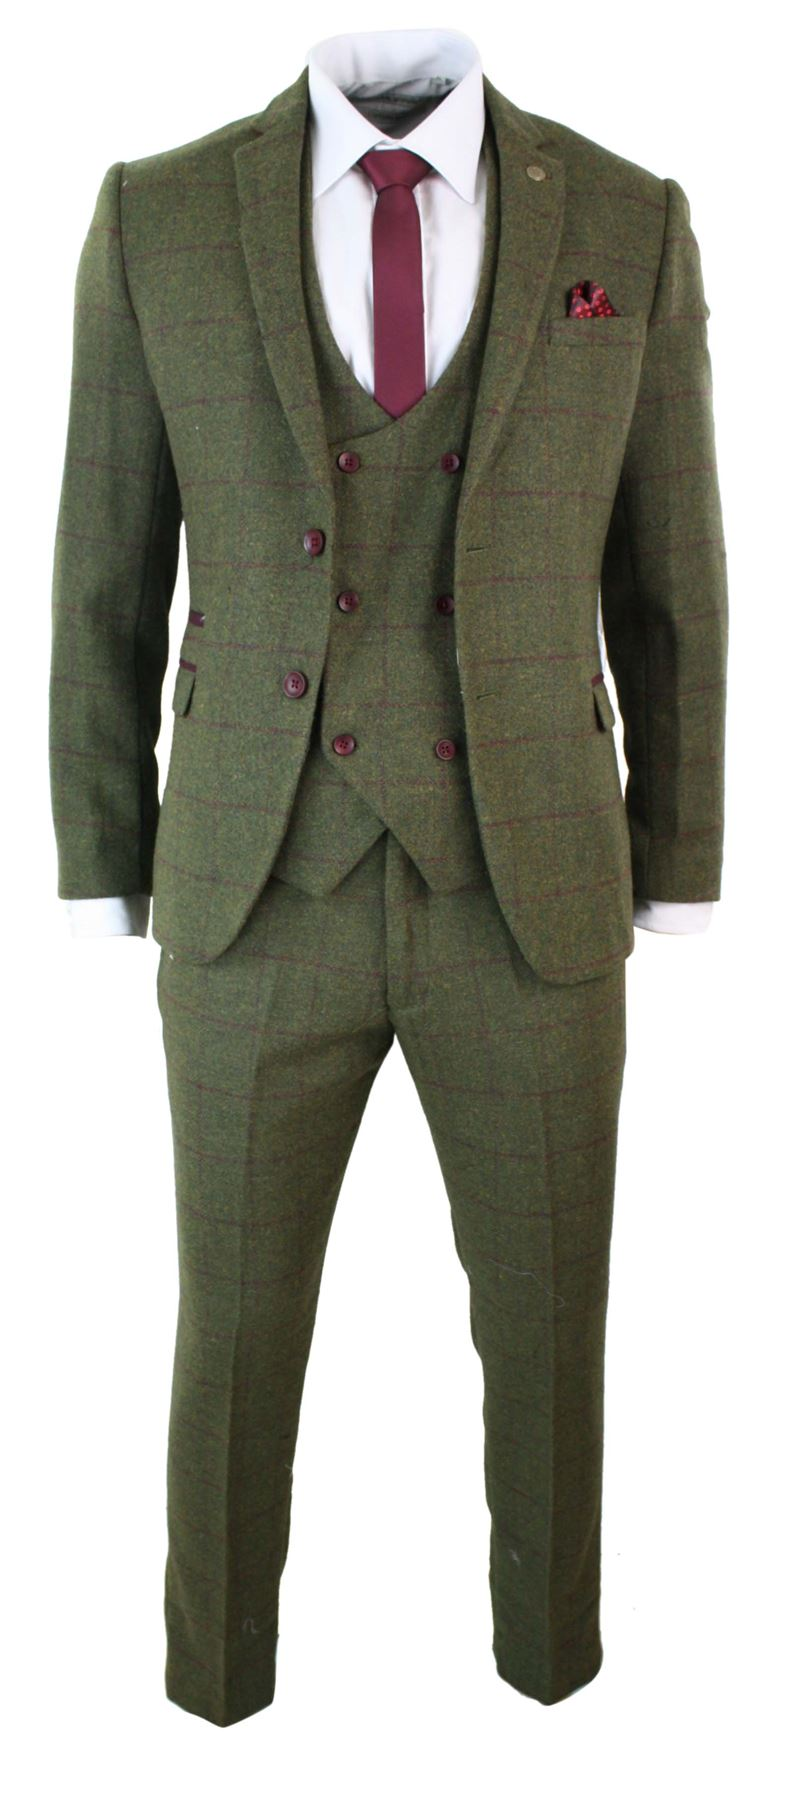 costume 3 pi ces homme tweed carreaux vert olive et bordeaux ajust ebay. Black Bedroom Furniture Sets. Home Design Ideas